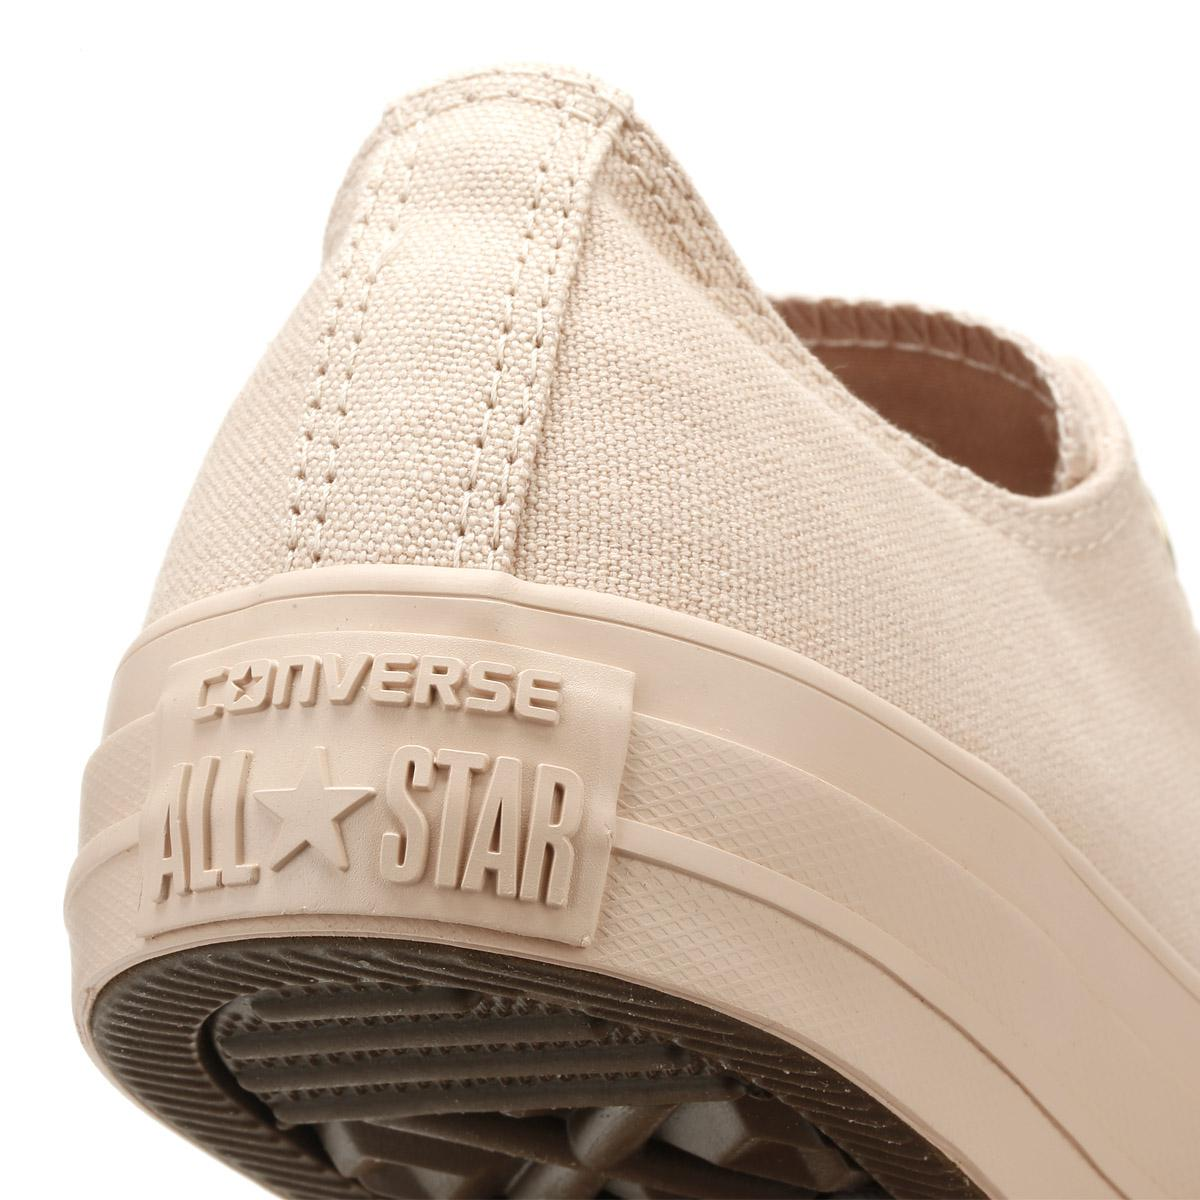 830e9051c8b8 ... Taylor All Star Womens Particle Beige Ox Trainers - Lyst. View  fullscreen